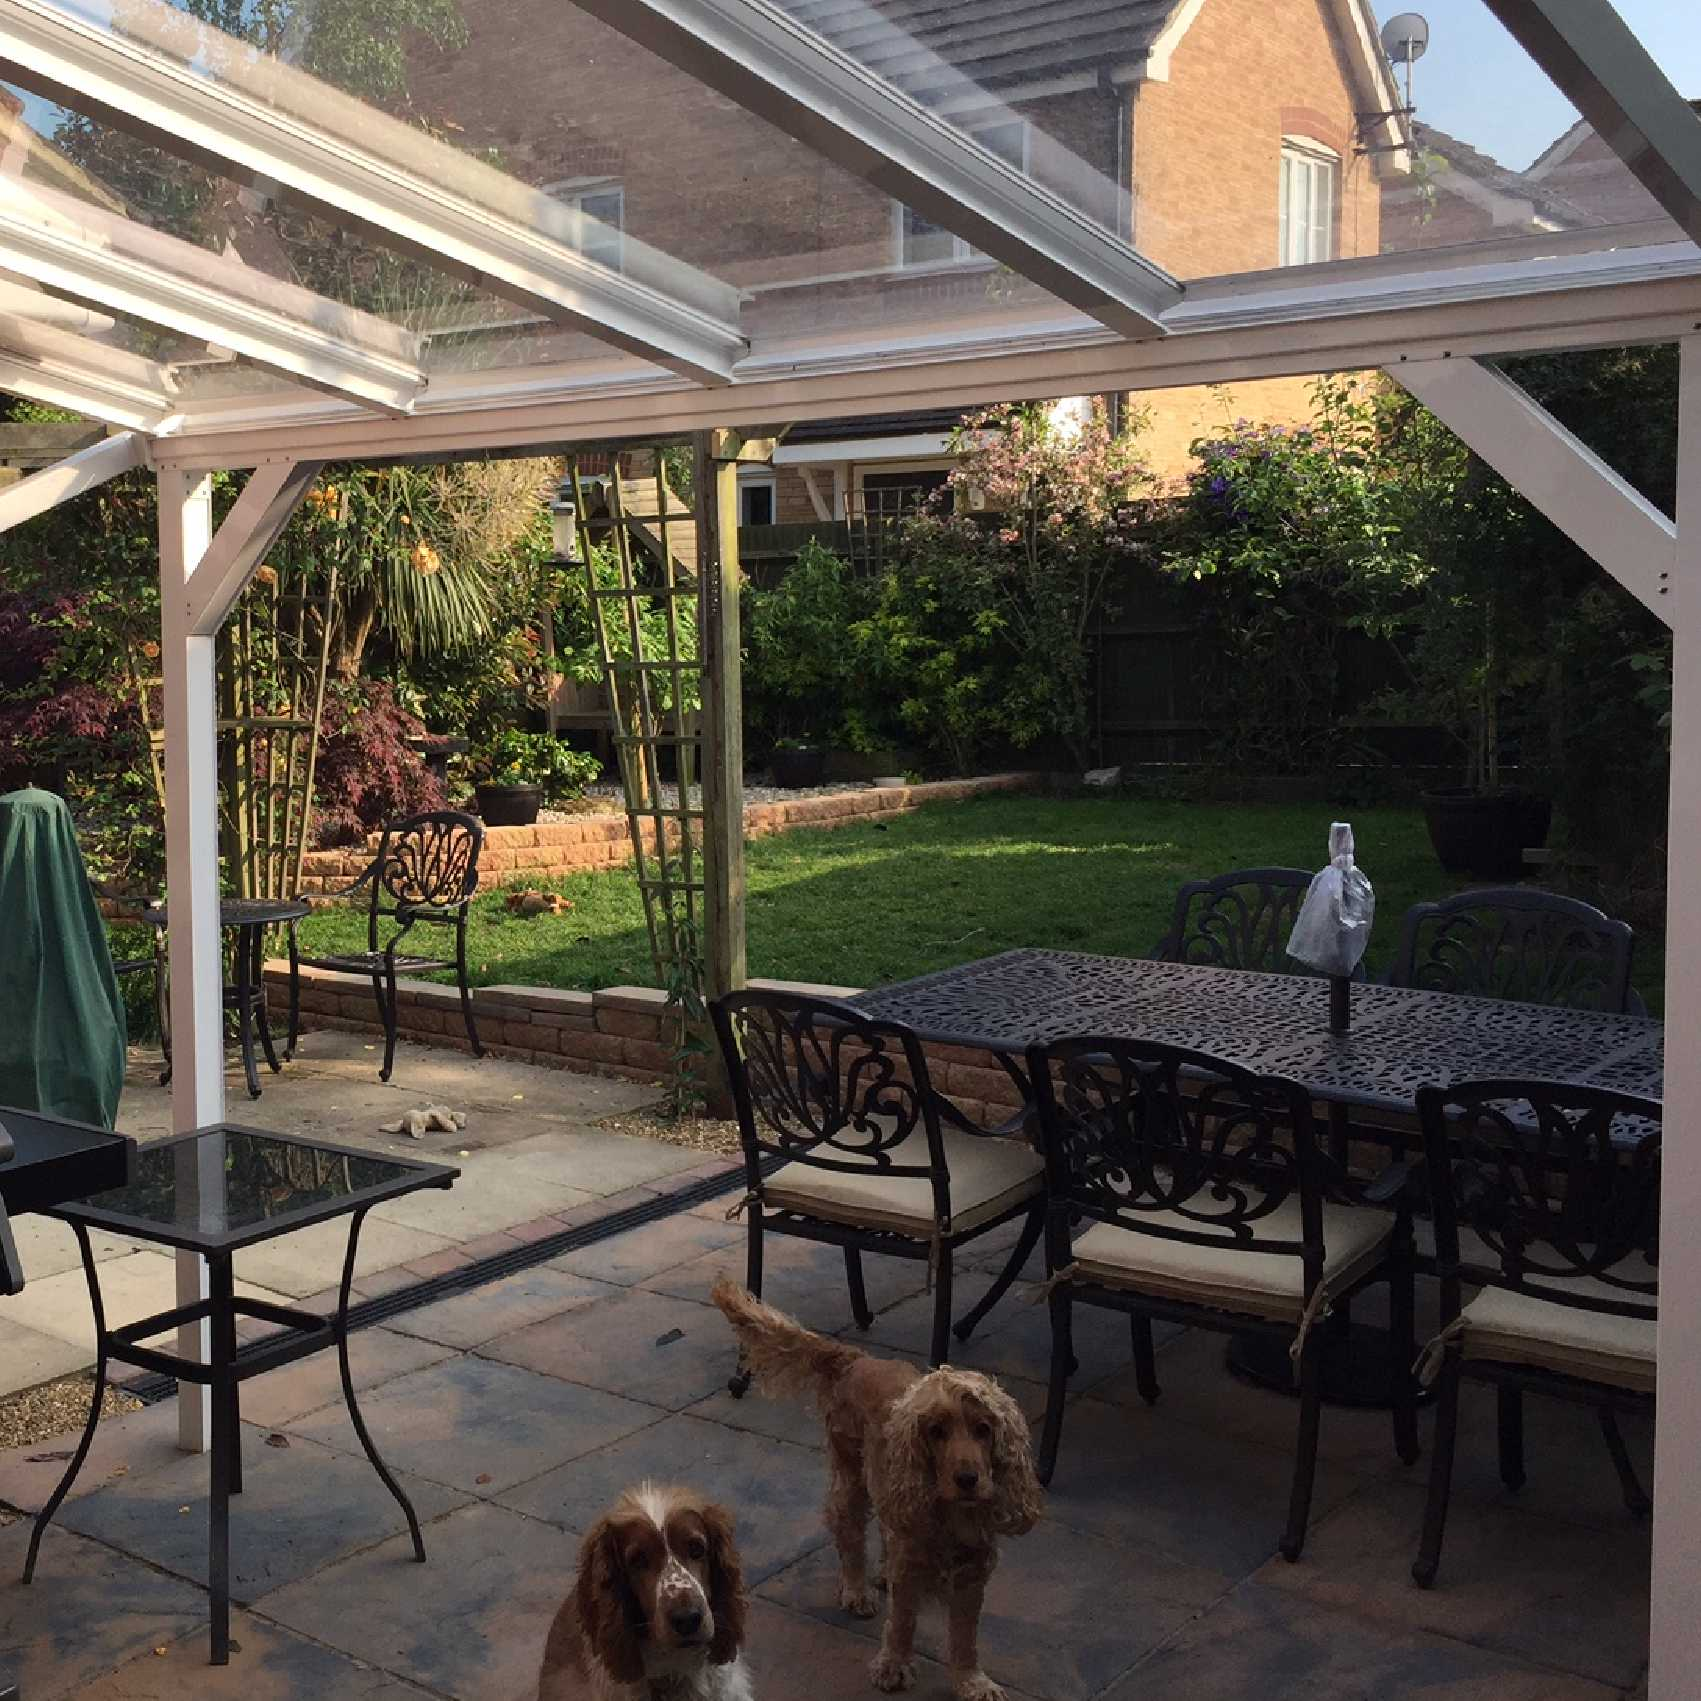 Affordable Omega Smart Lean-To Canopy with 6mm Glass Clear Plate Polycarbonate Glazing - 9.8m (W) x 3.5m (P), (5) Supporting Posts